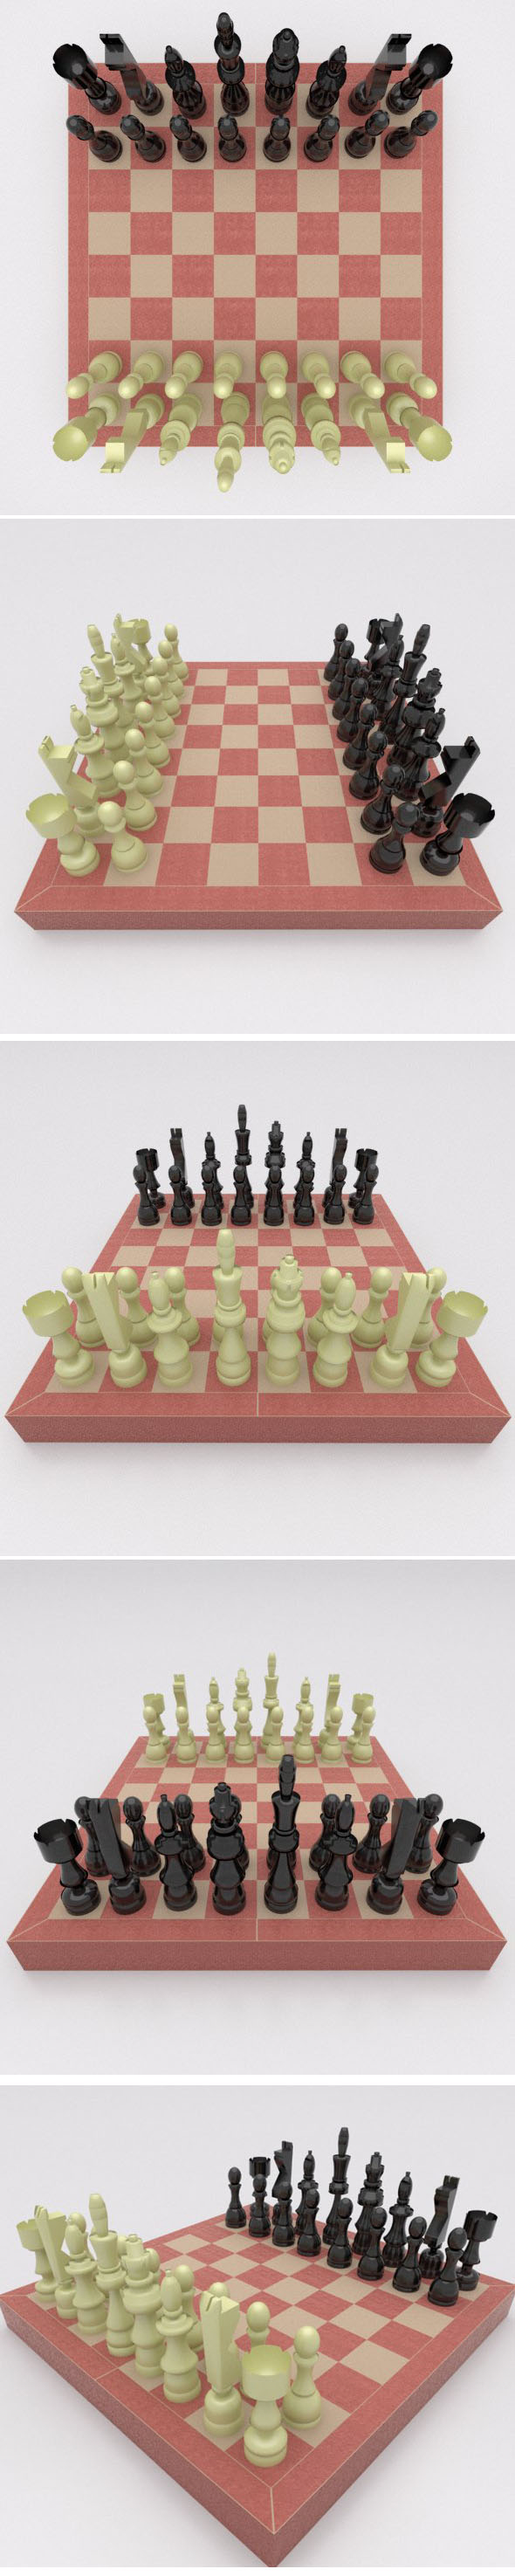 Chess game set - 3DOcean Item for Sale